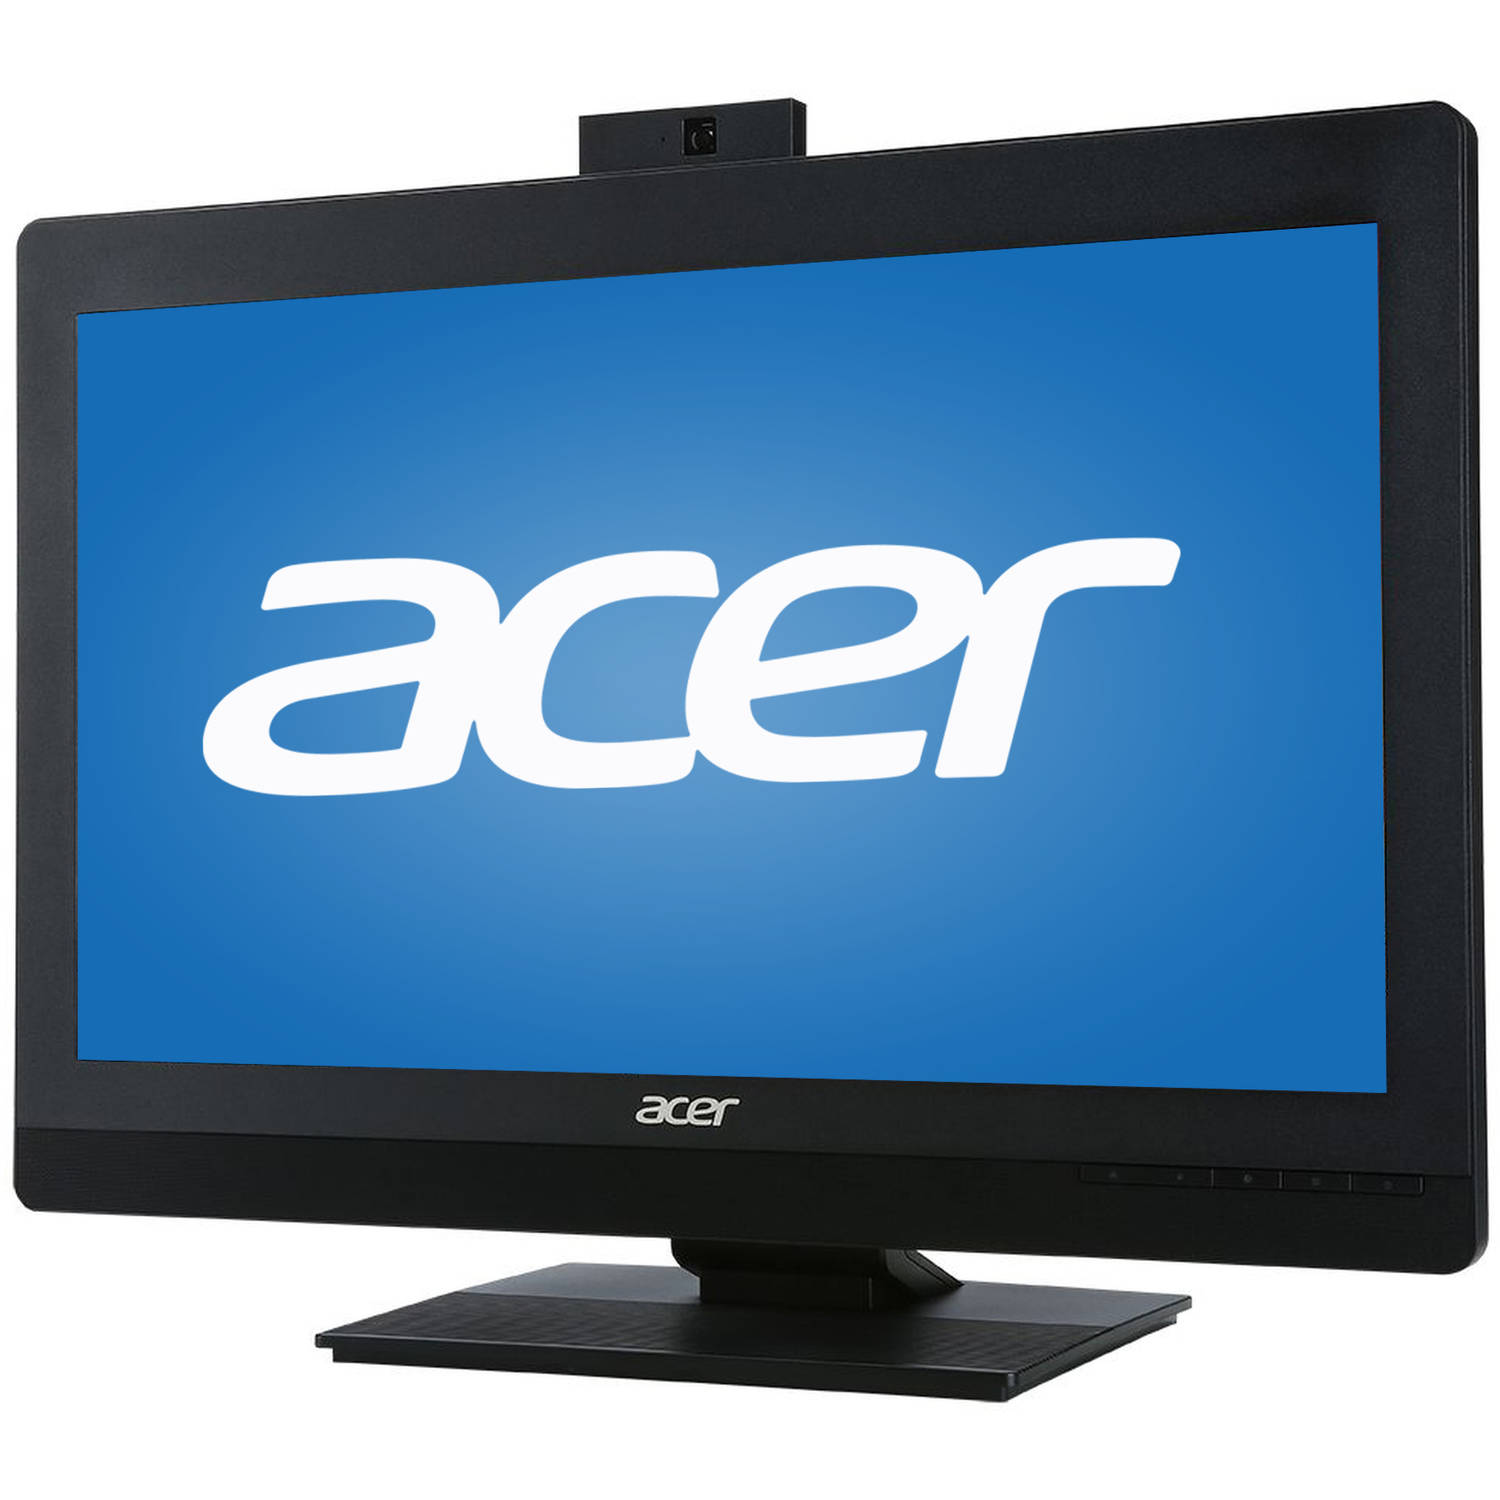 """Acer Veriton Z4820G All-in-One Desktop PC with Intel Core i5-6500 Processor, 8GB Memory, 23.8"""" Monitor, 1TB Hard... by Acer"""